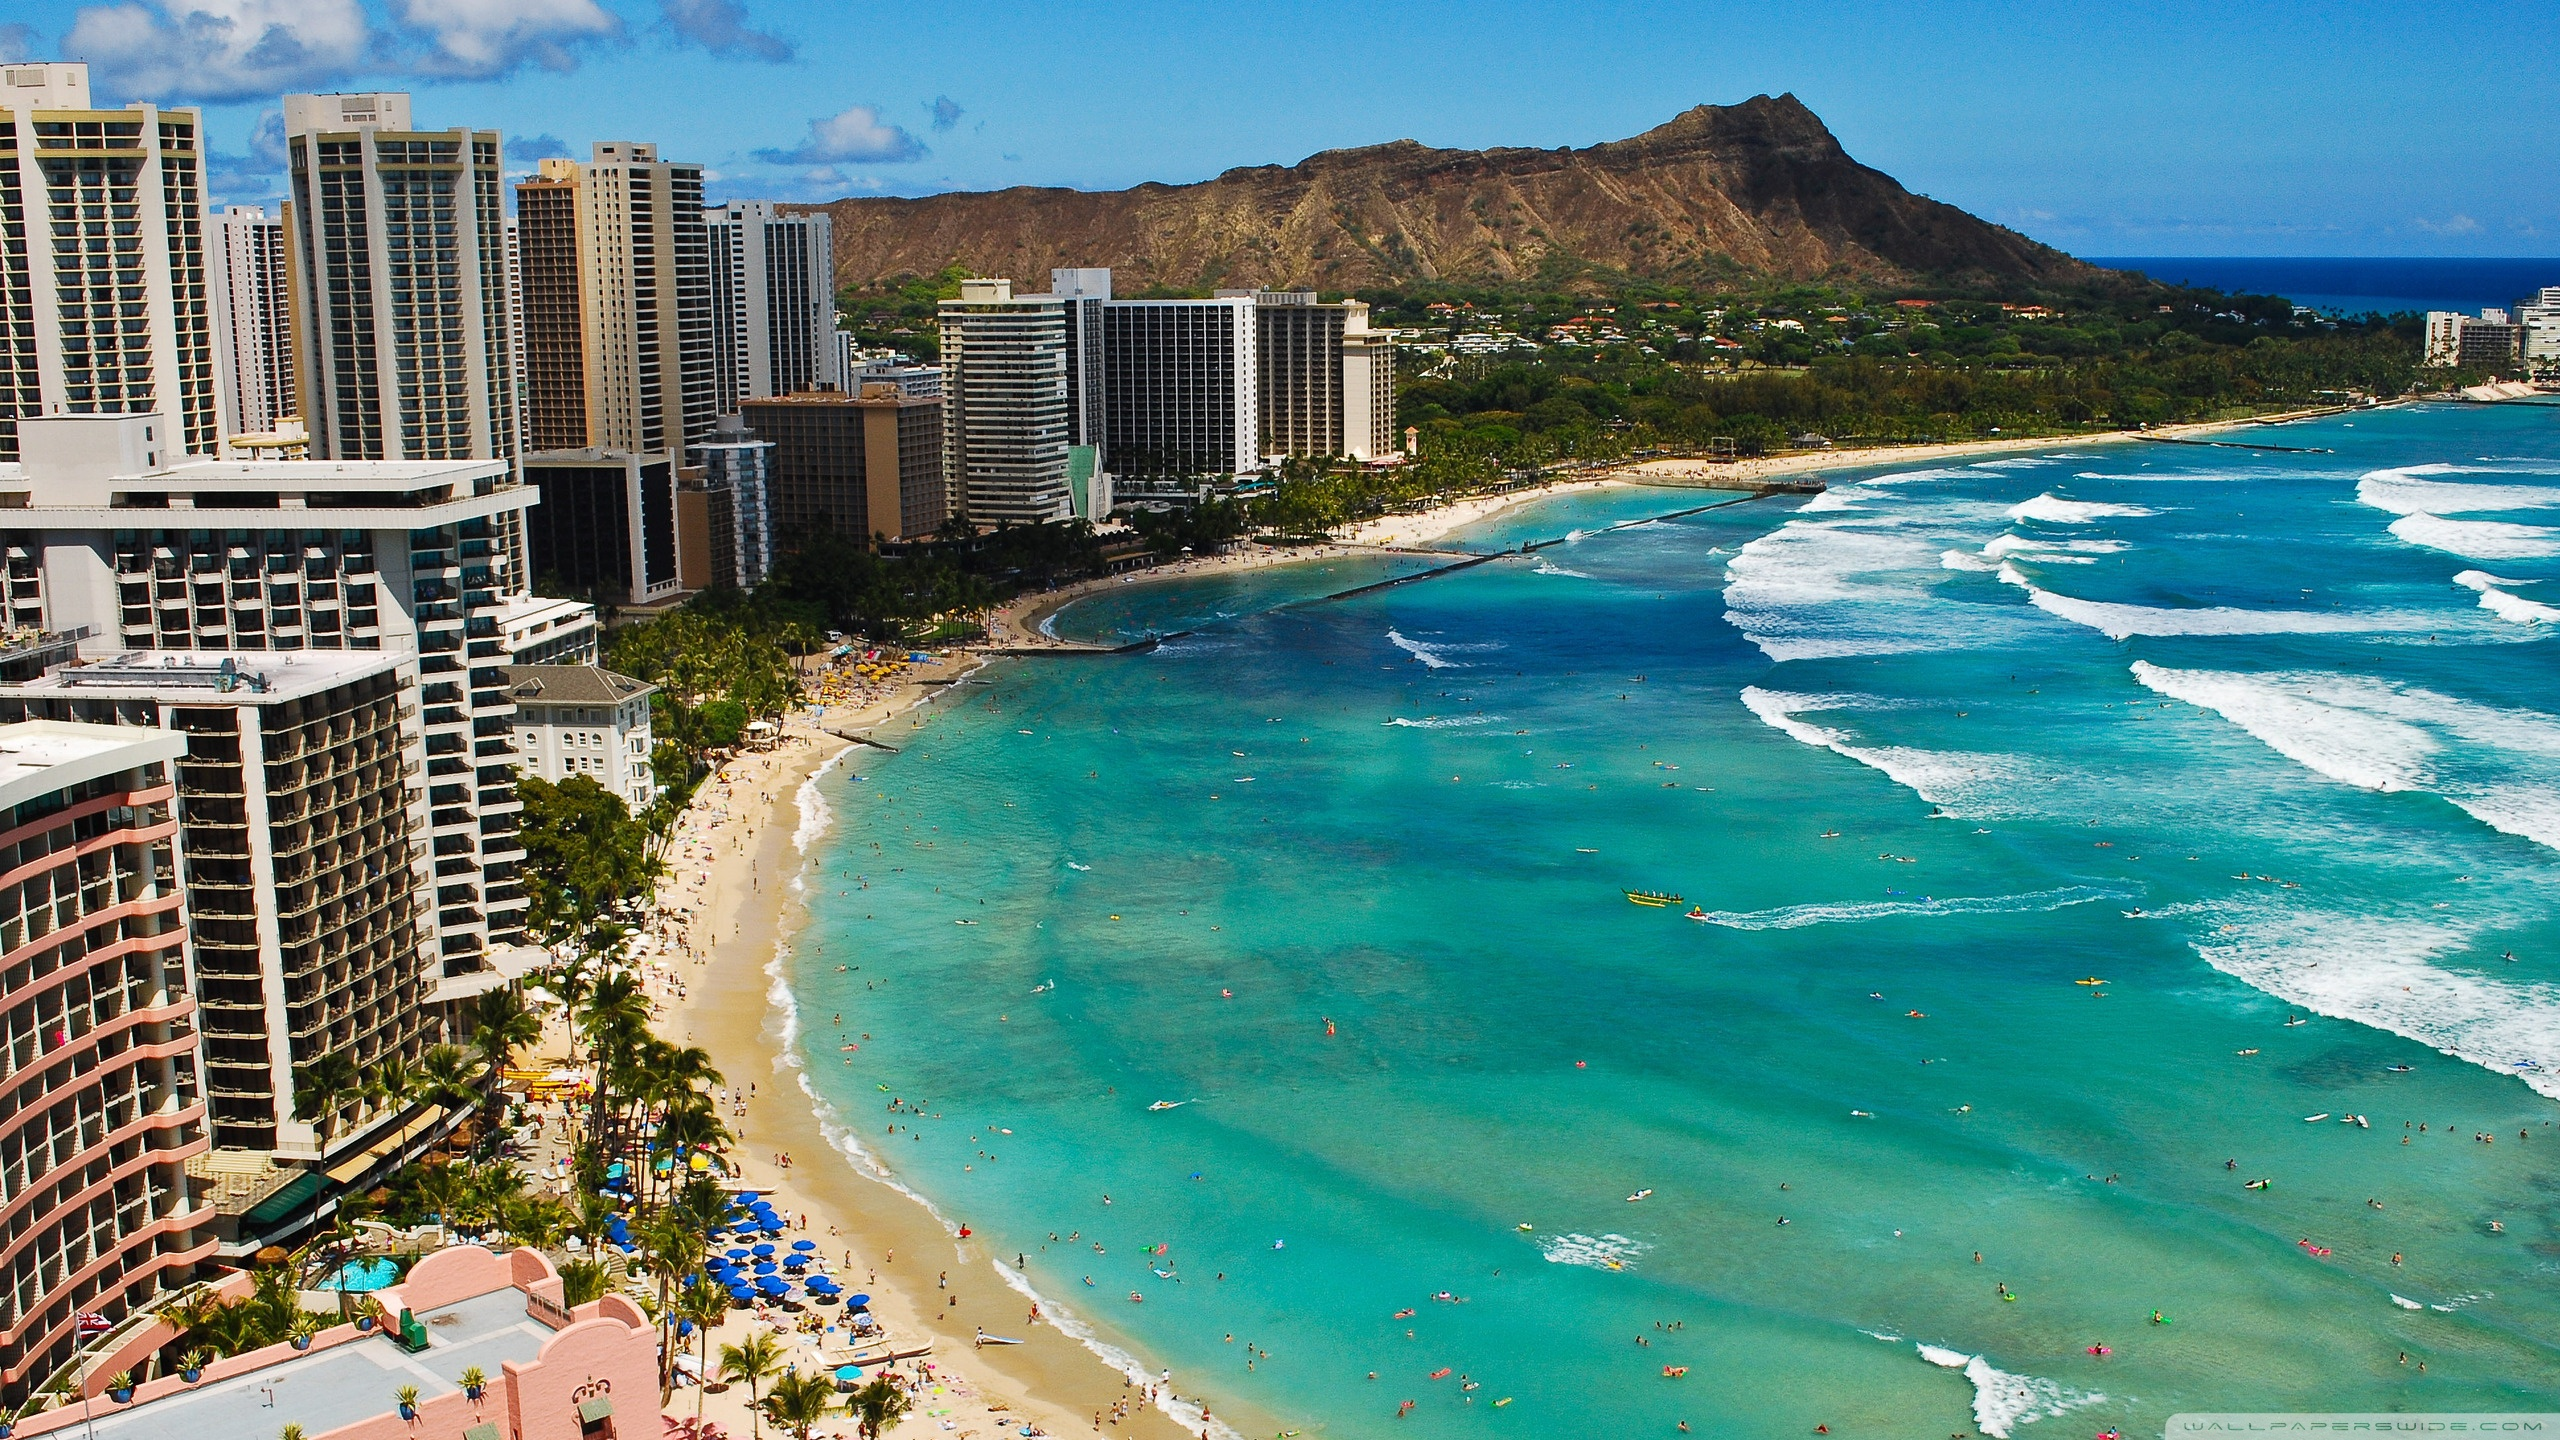 Waikiki Beach 4K HD Desktop Wallpaper for 4K Ultra HD TV Dual 2560x1440